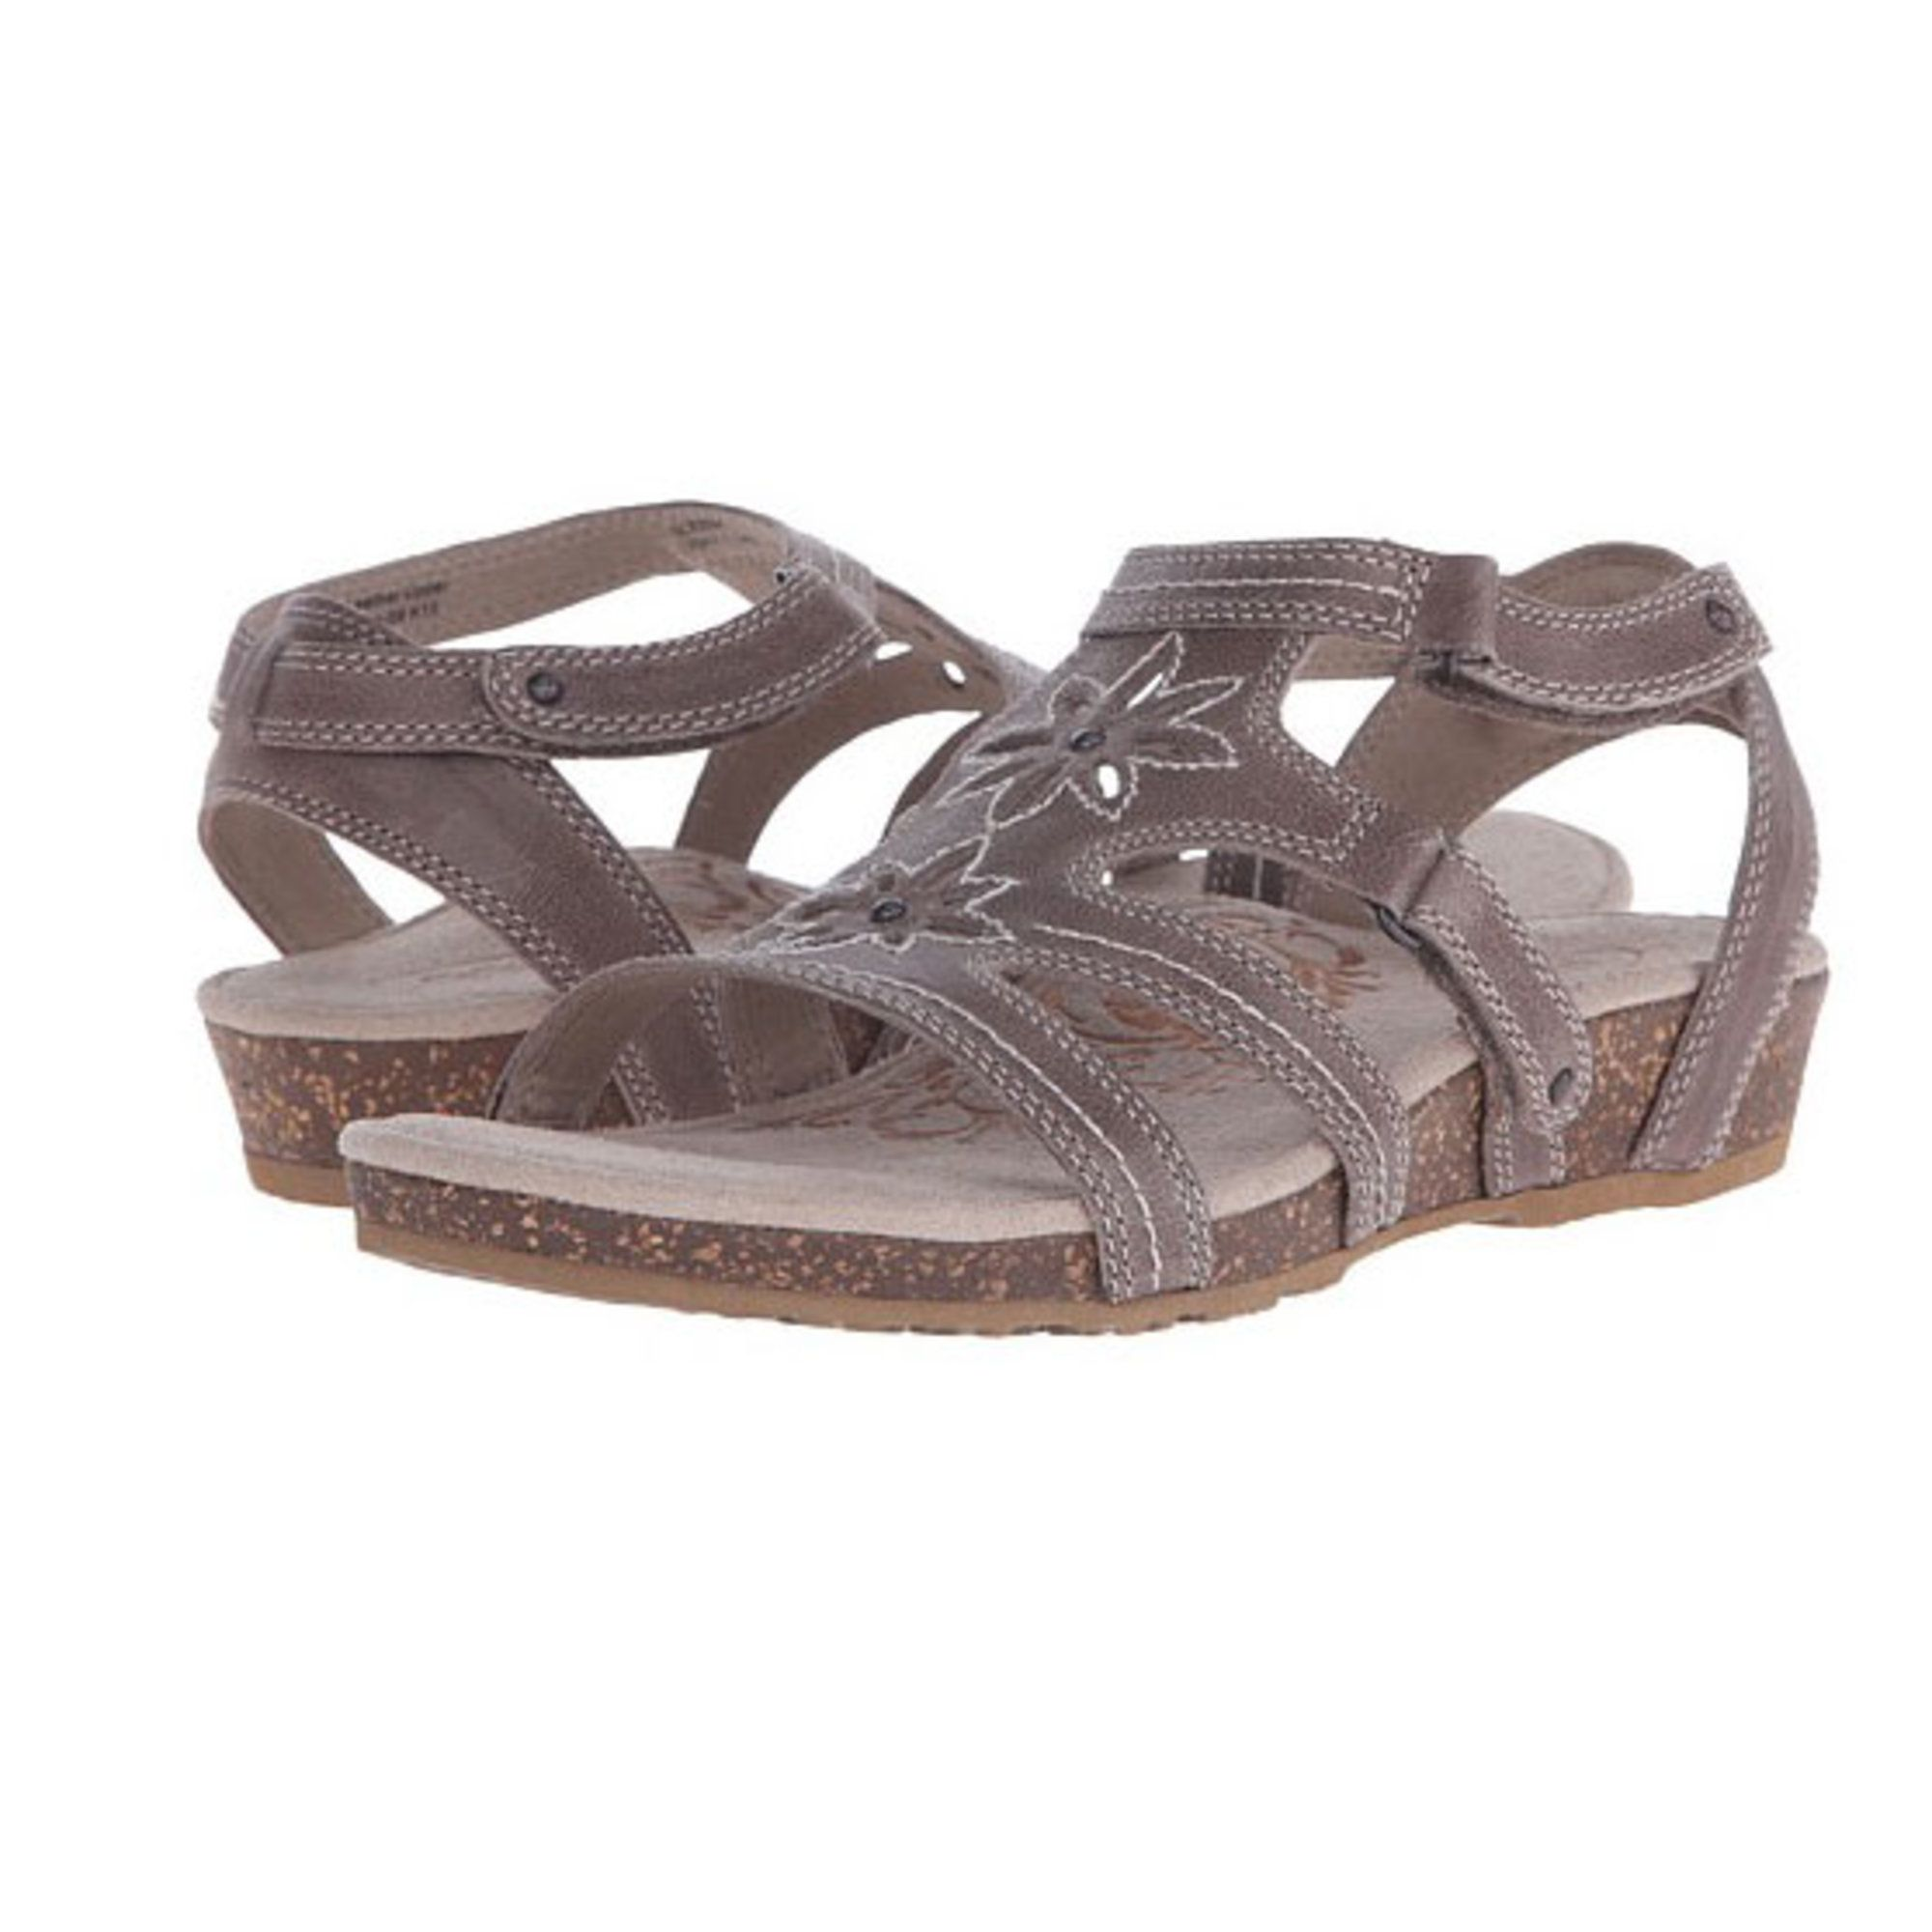 4ca60723d6cb Discover ideas about Ecco Sandals